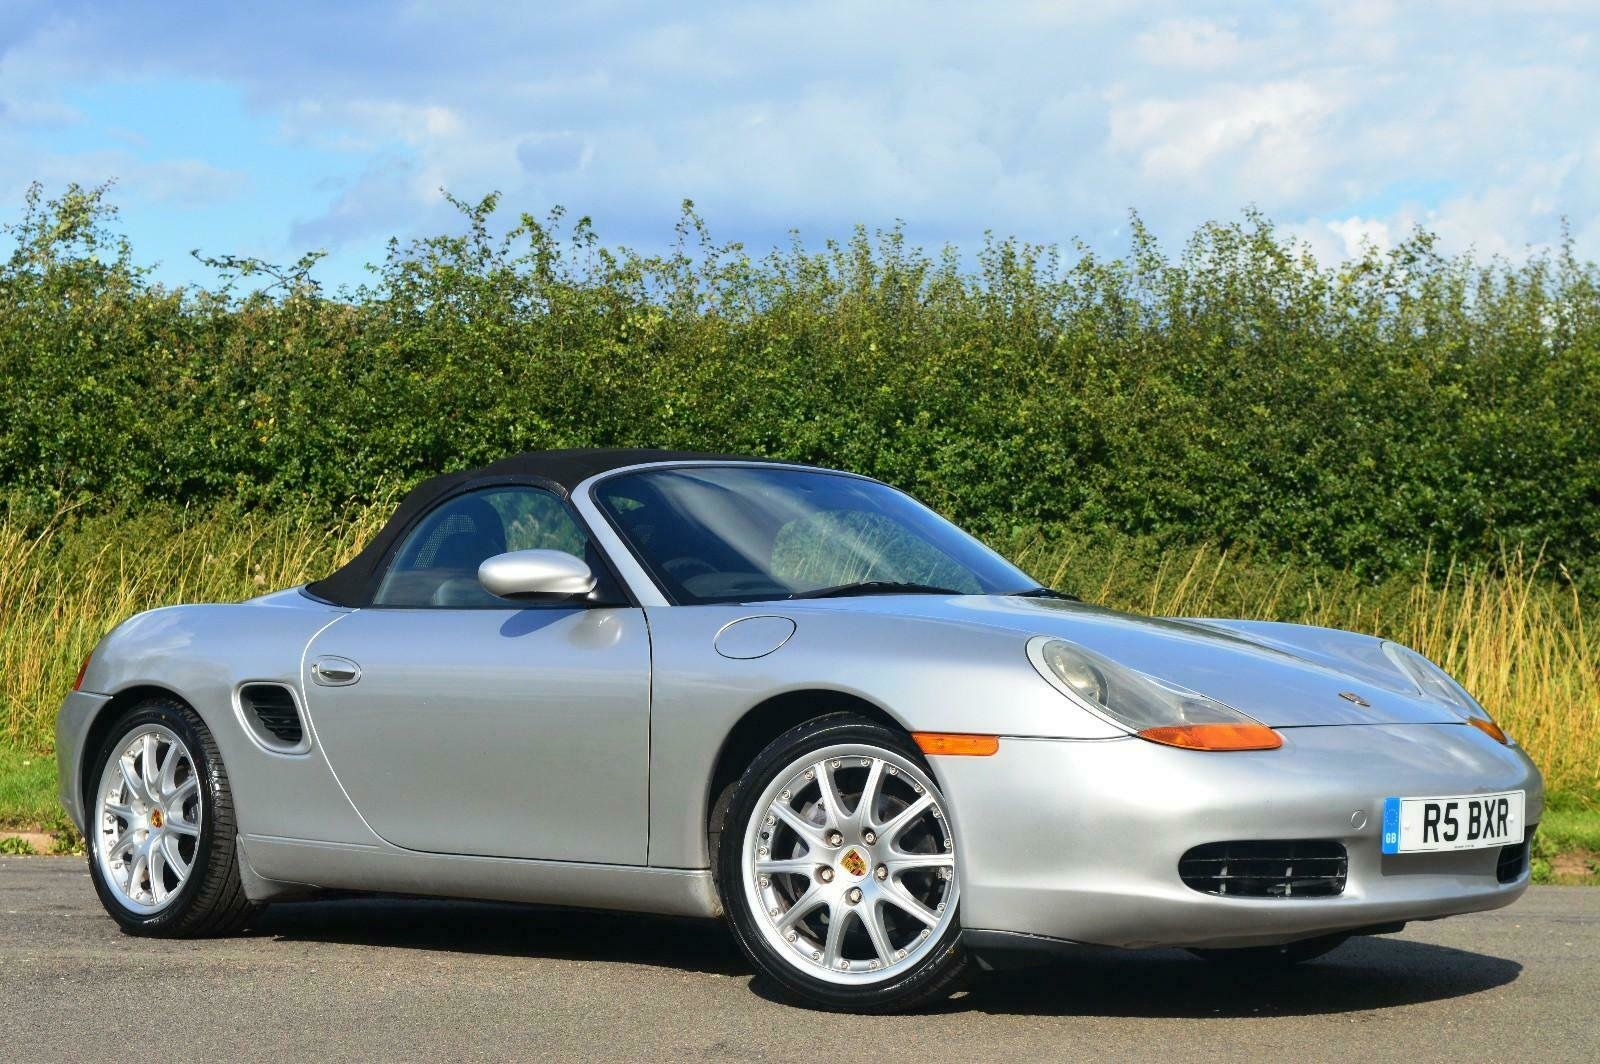 1998 Porsche Boxster 986 2.5 Manual Petrol Convertible F.S.H SOLD (picture 4 of 6)